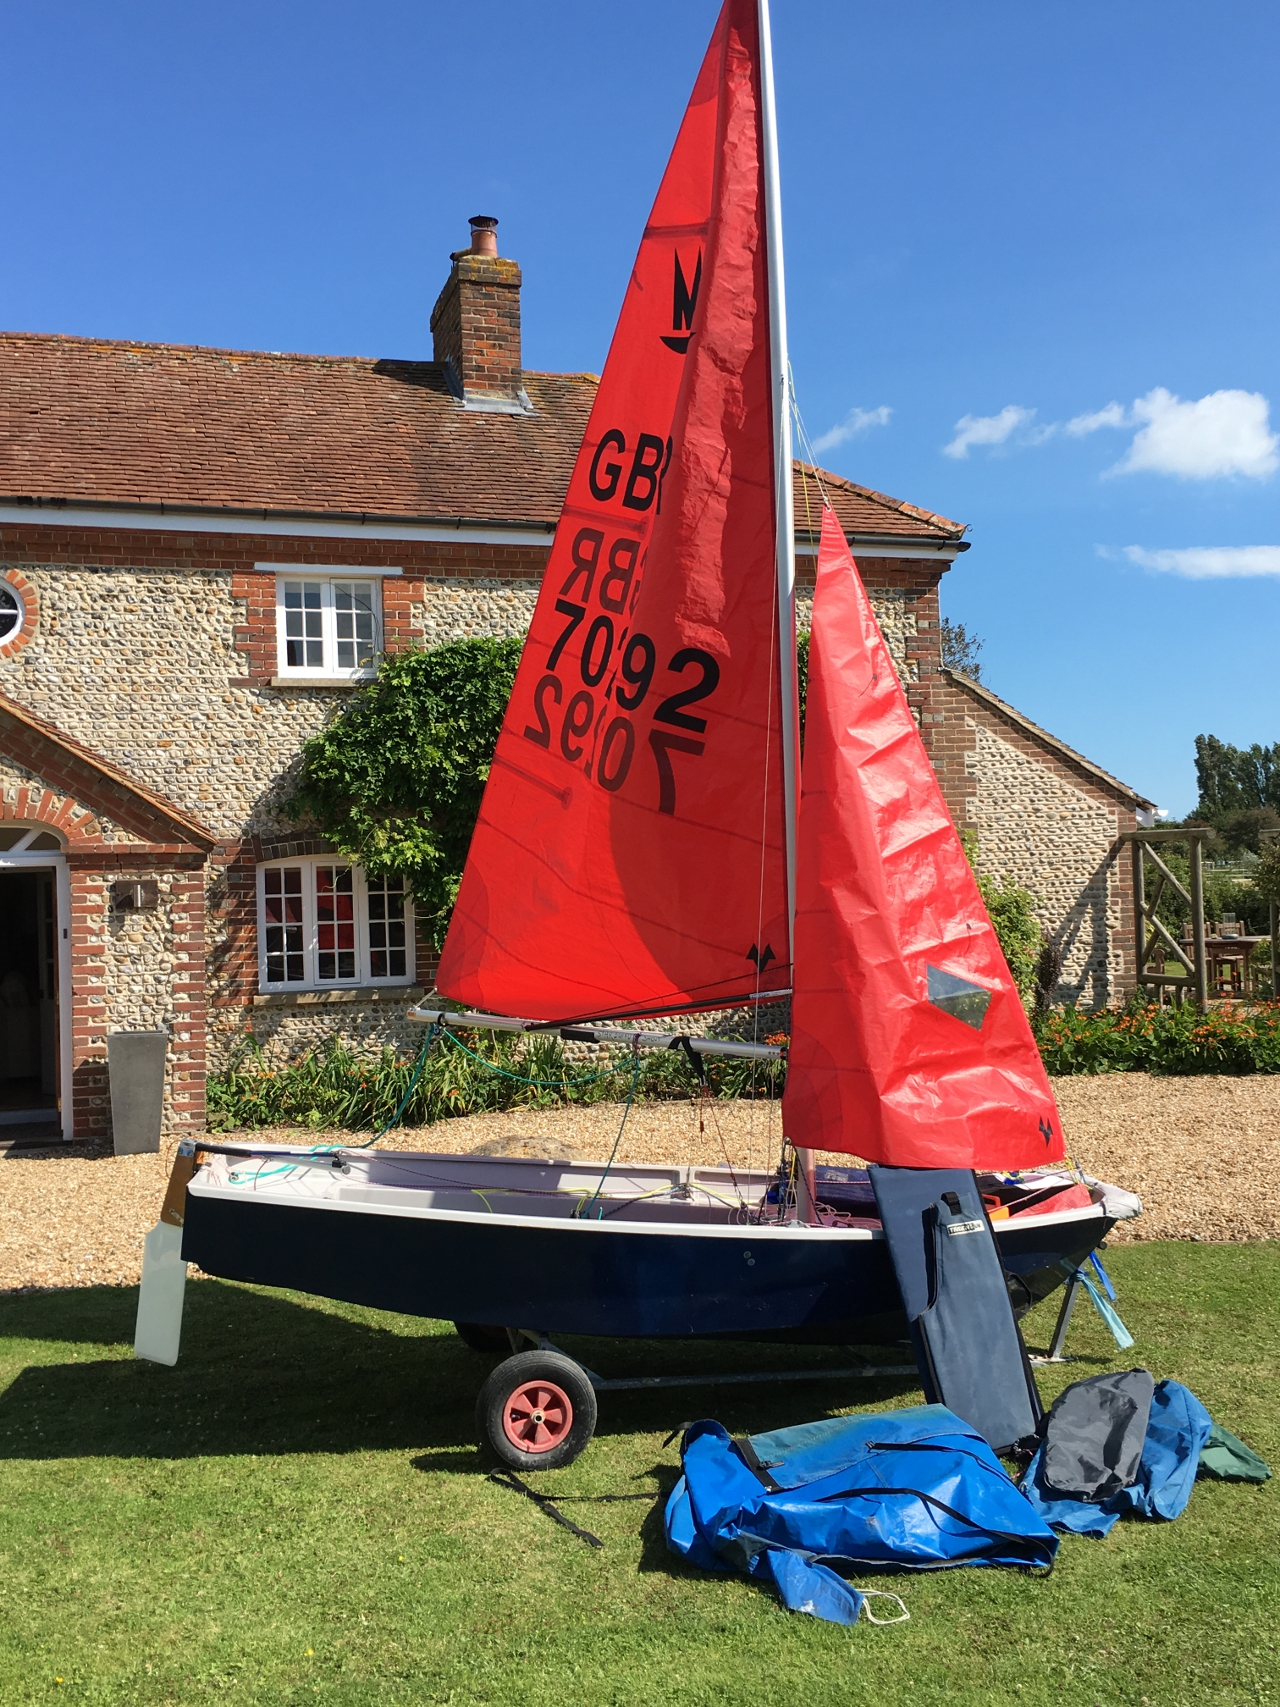 A Mirror dinghy rigged  up outside a house